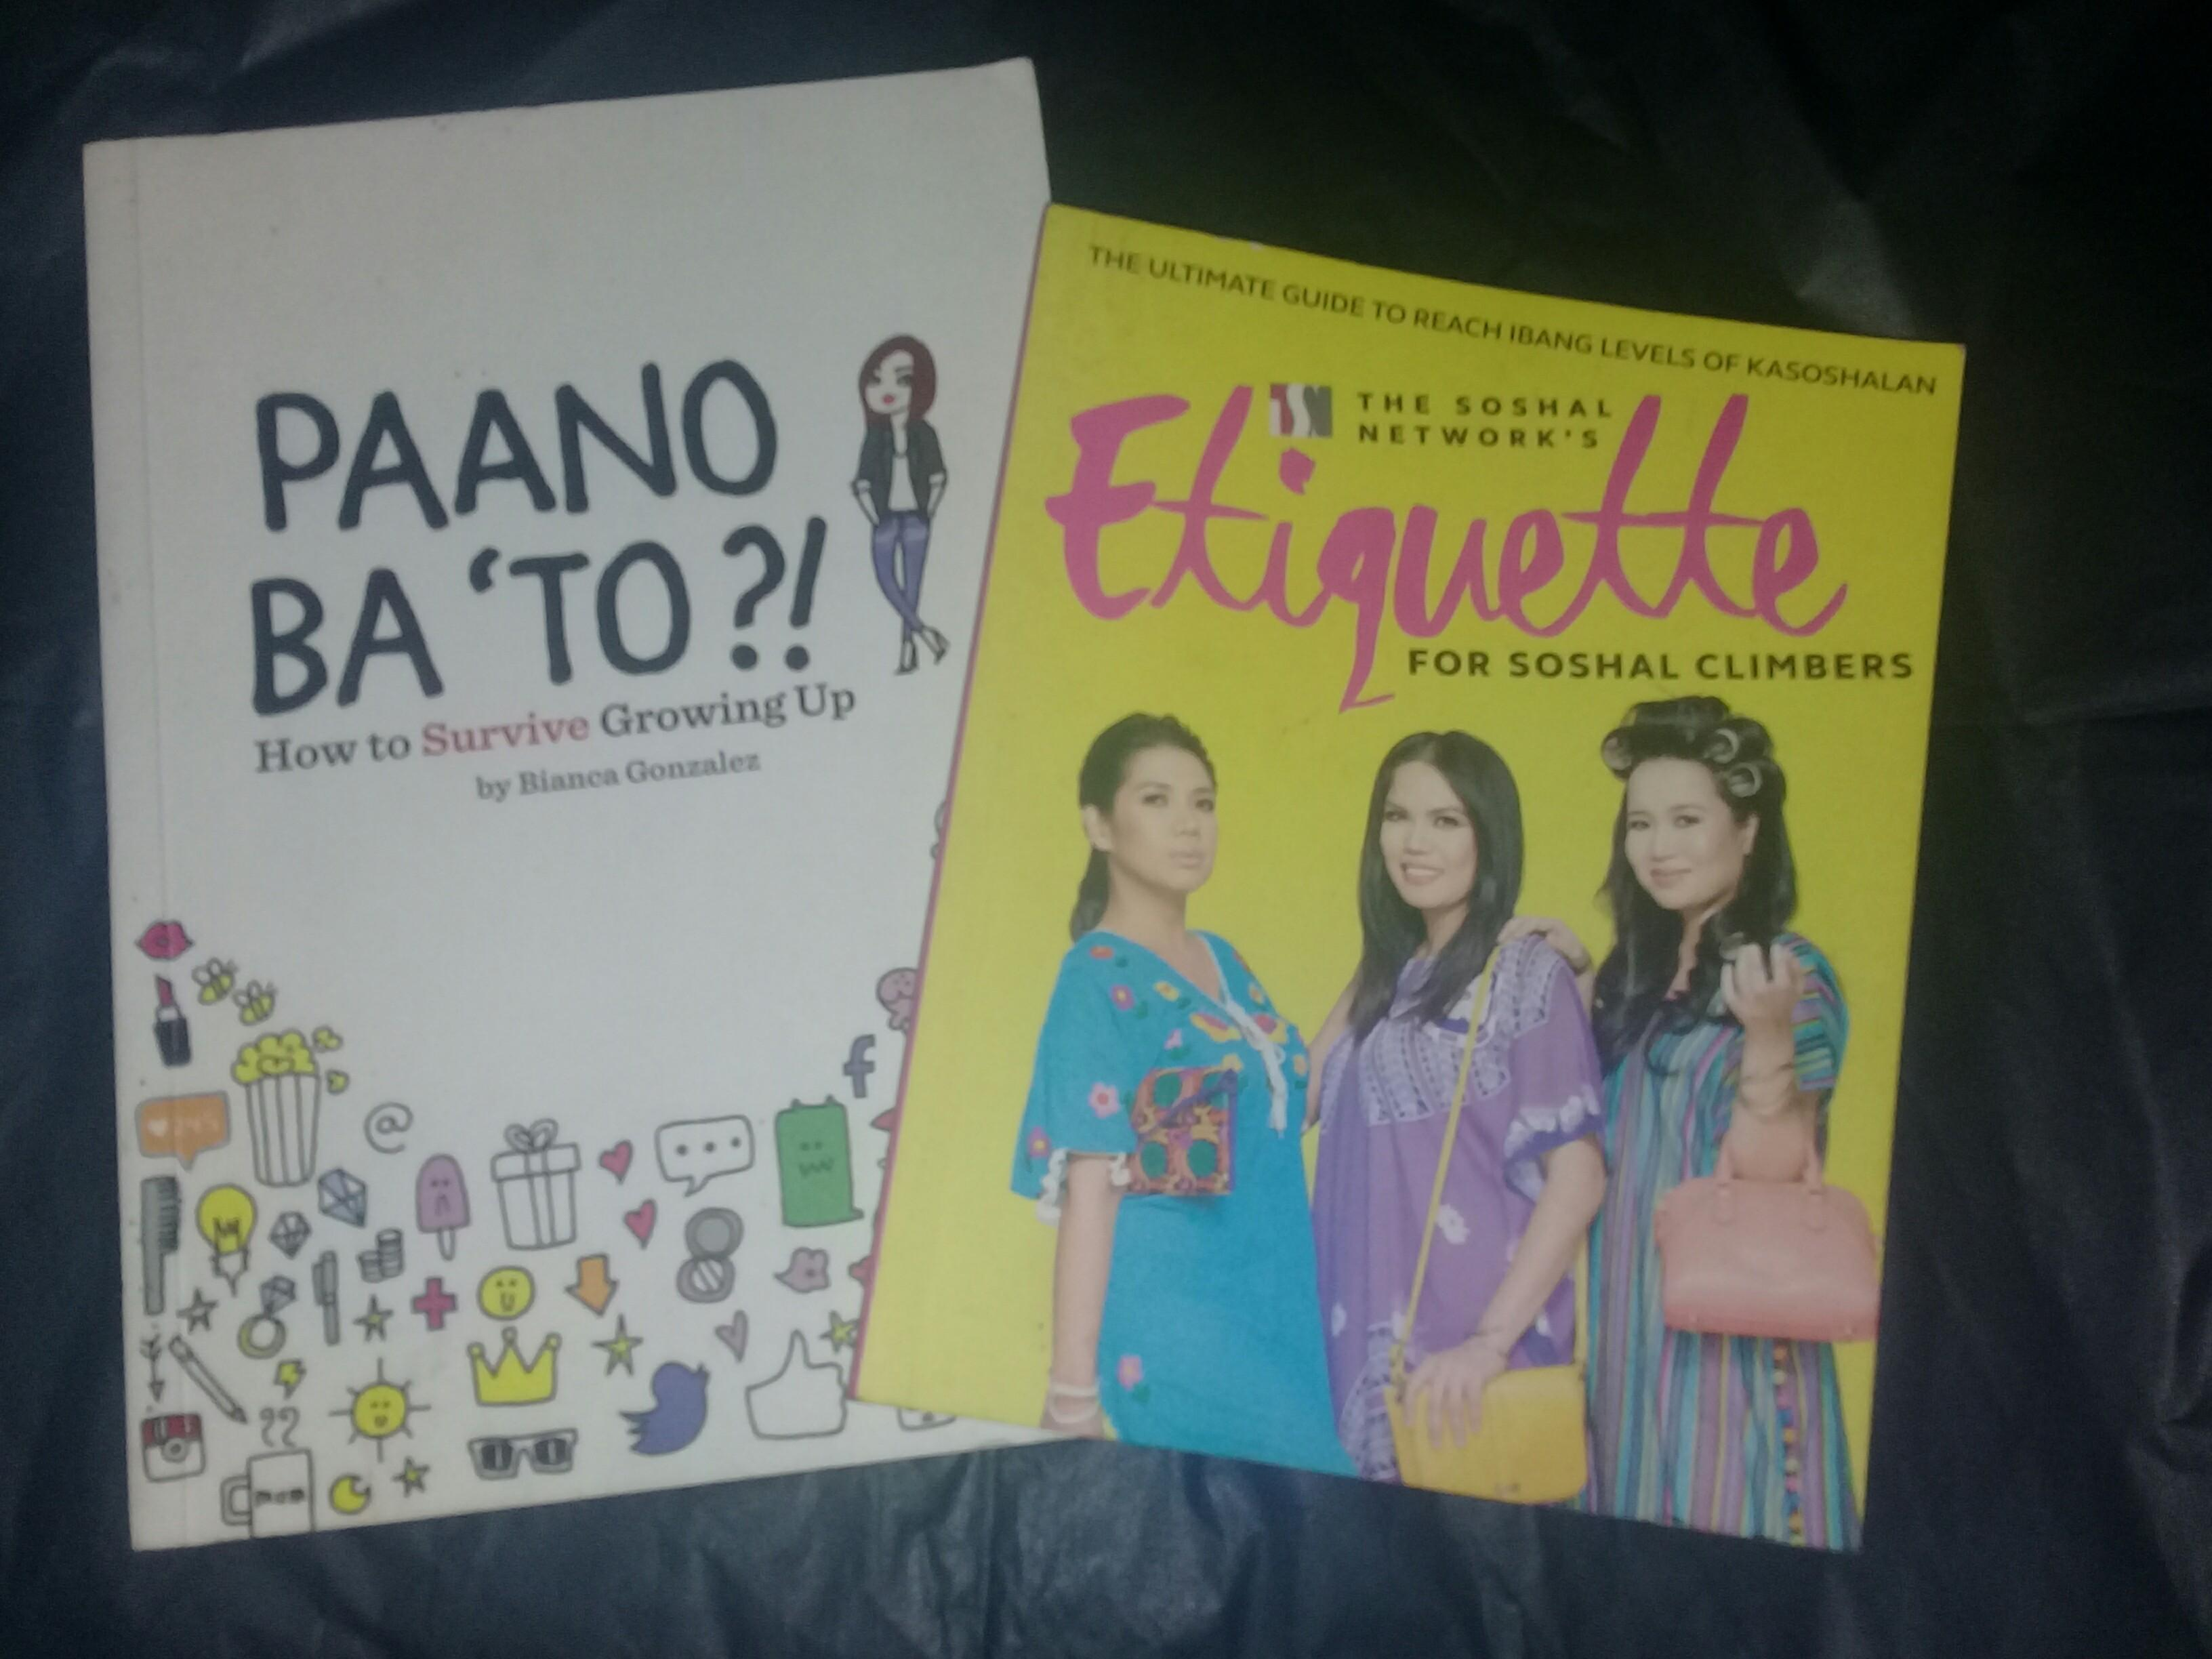 PINOY BOOKS BUNDLE: PAANO BA TO? BIANCA GONZALES & ETIQUETTE FOR SOSYALCLIMBERS